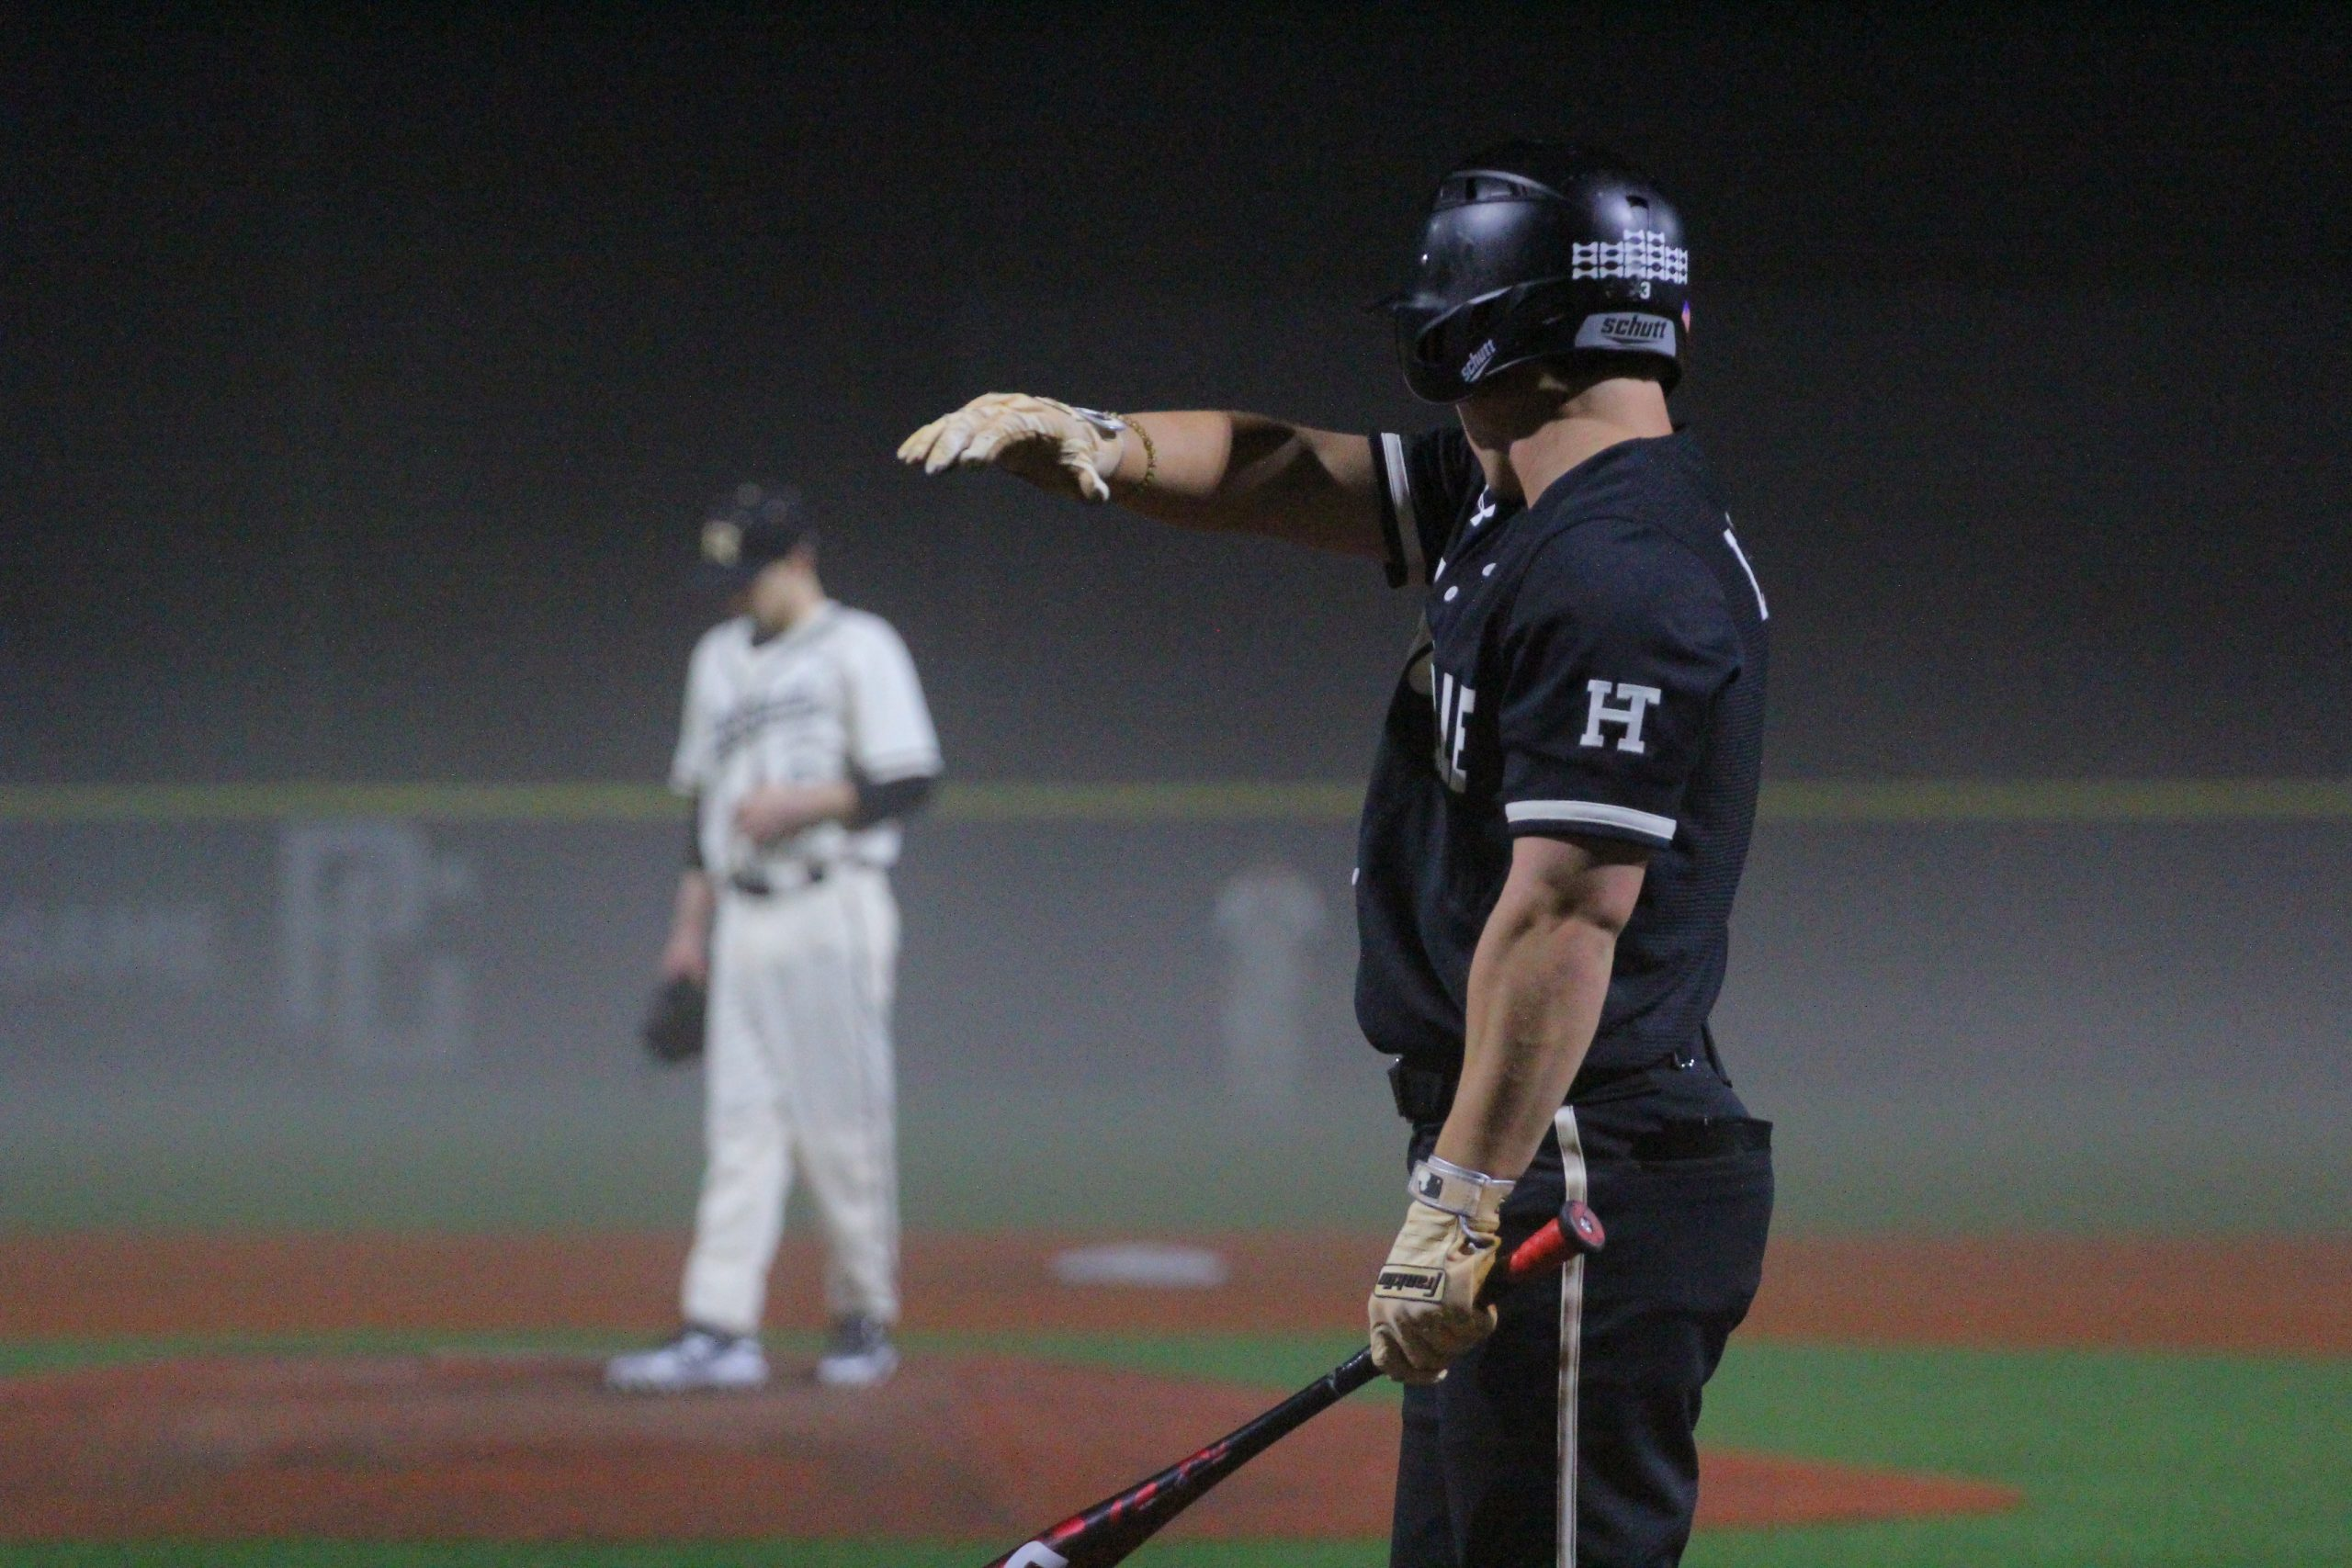 HTHS baseball weathers brutal slate to begin season to remain within top 10 of possibly final ASWA rankings